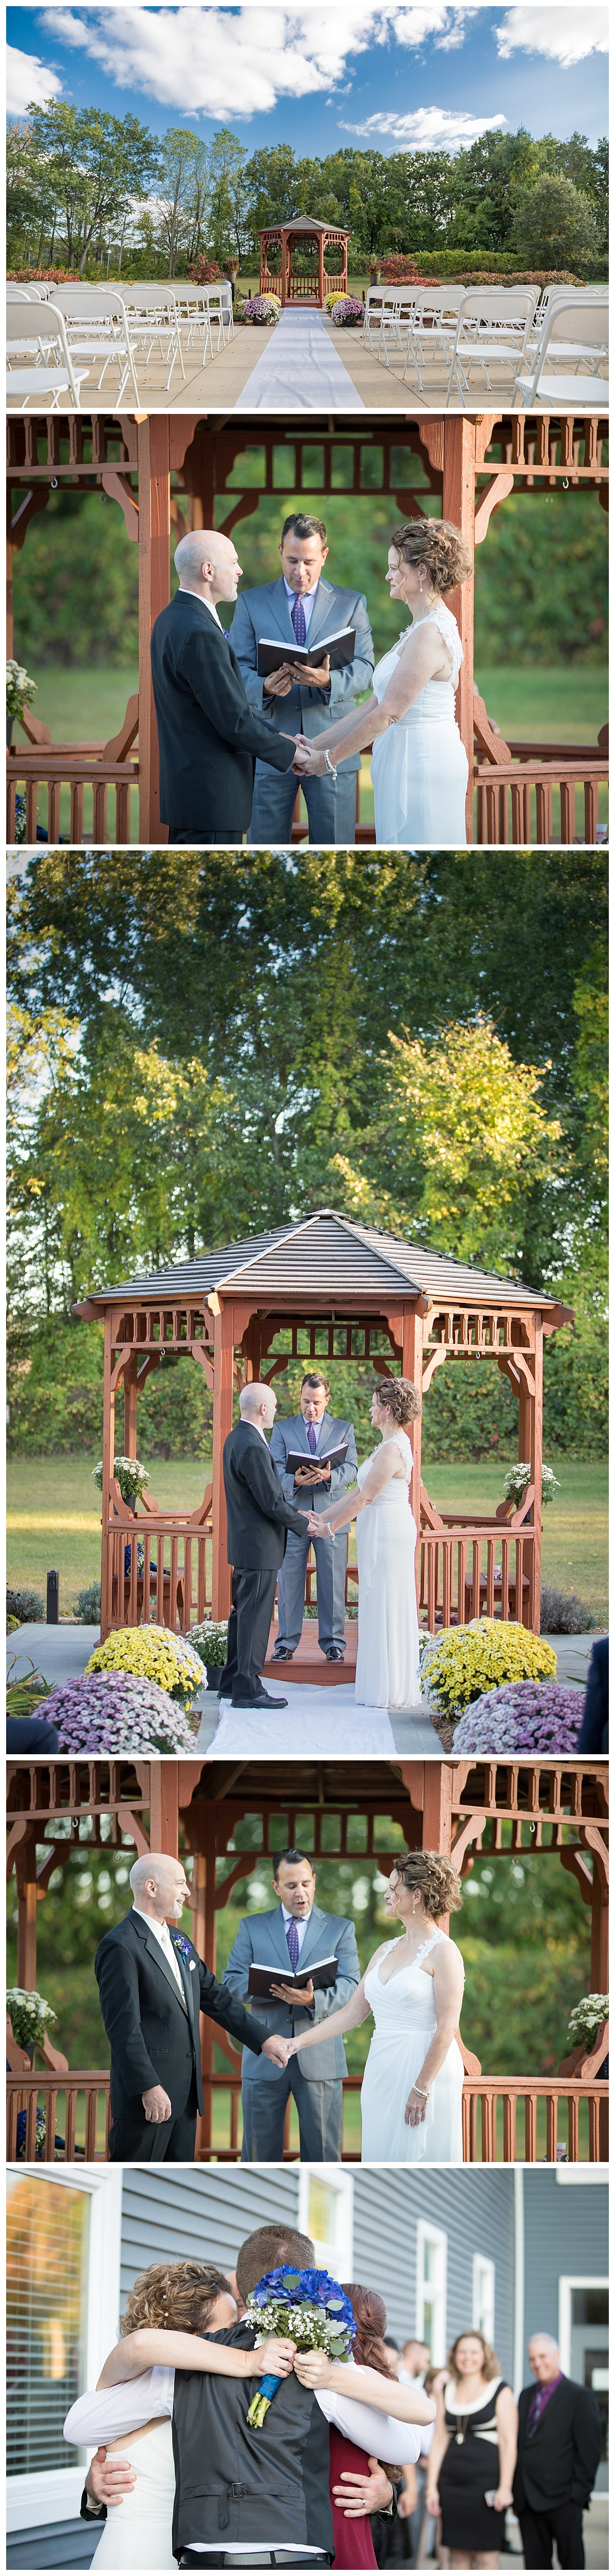 lake orion community house wedding